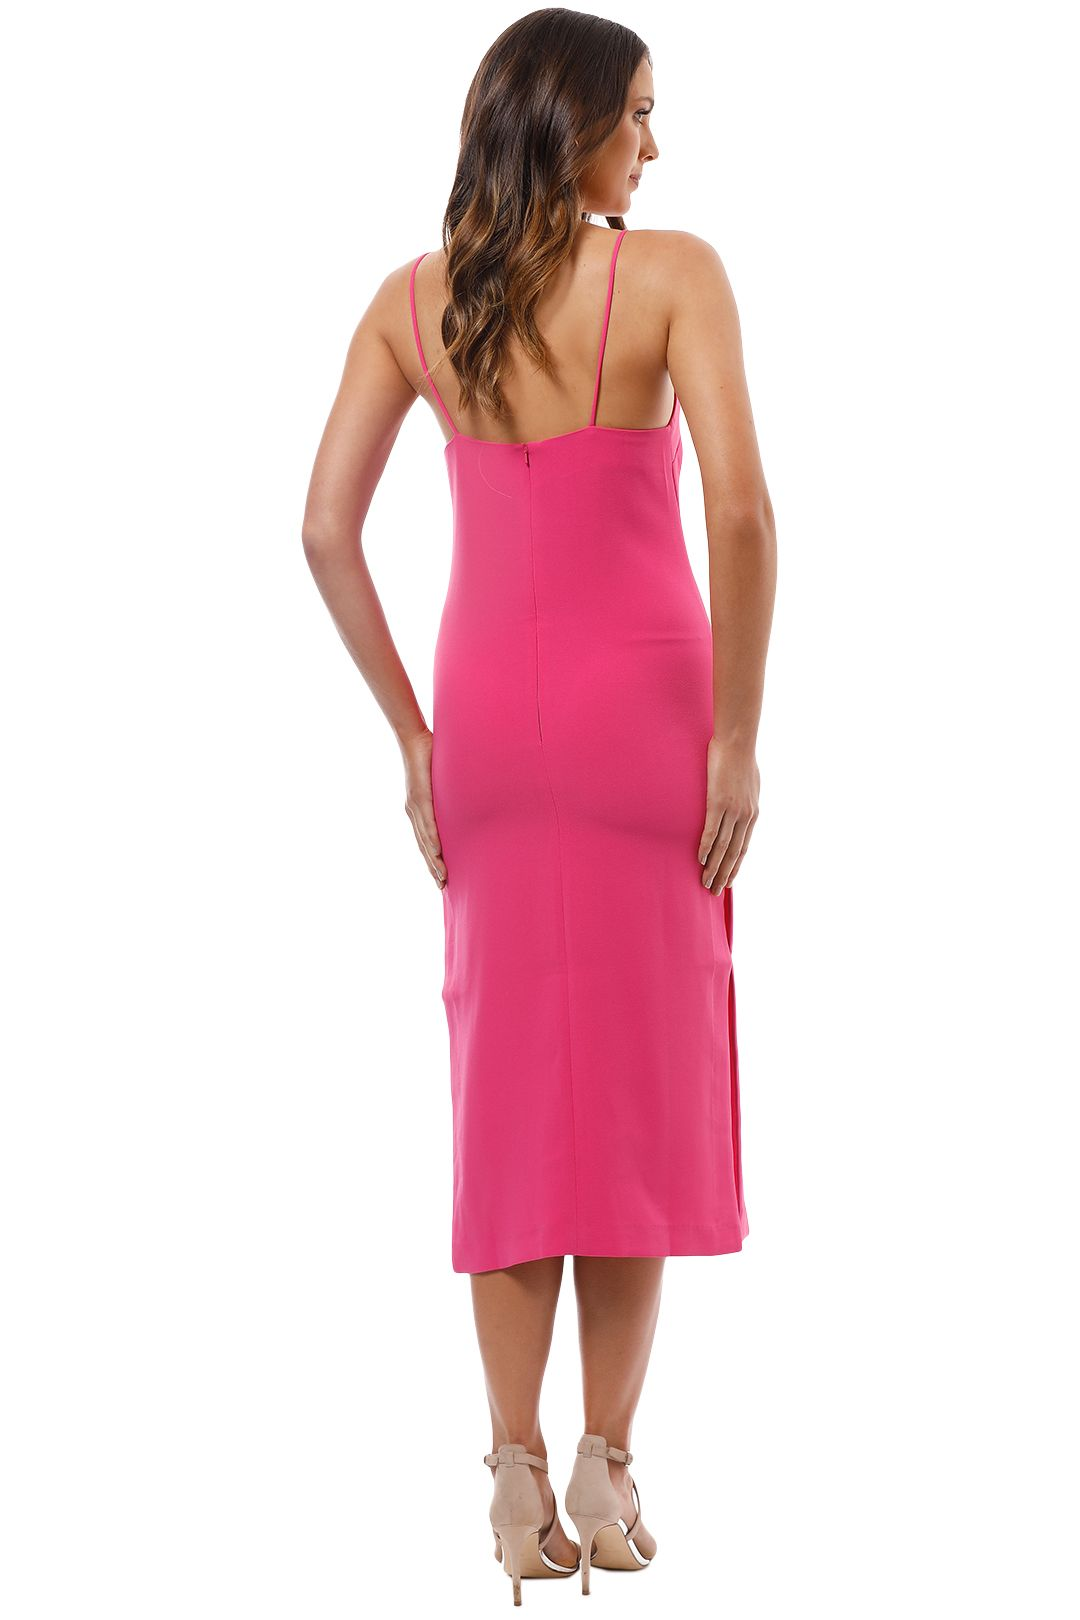 Elliatt - Fossil Dress - Fuschia - Back